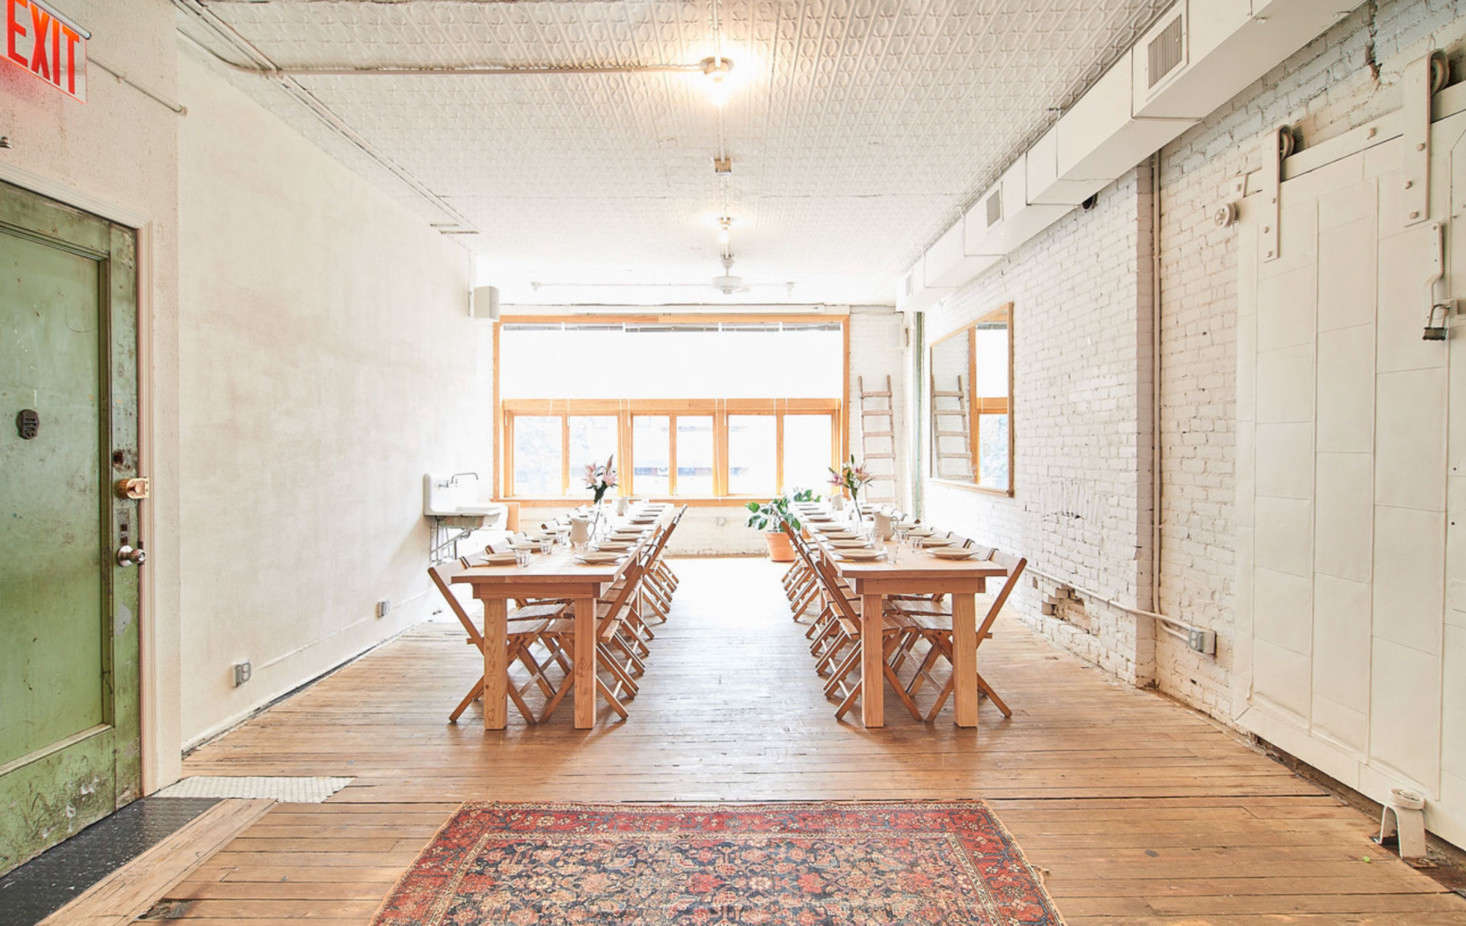 """The dining space. The green door is original to the building and was left untouched. The wood floors are also original. """"Where the original wood had rotted, I filled it in with tile instead of wood, in whatever shaped was needed,"""" says Poe."""